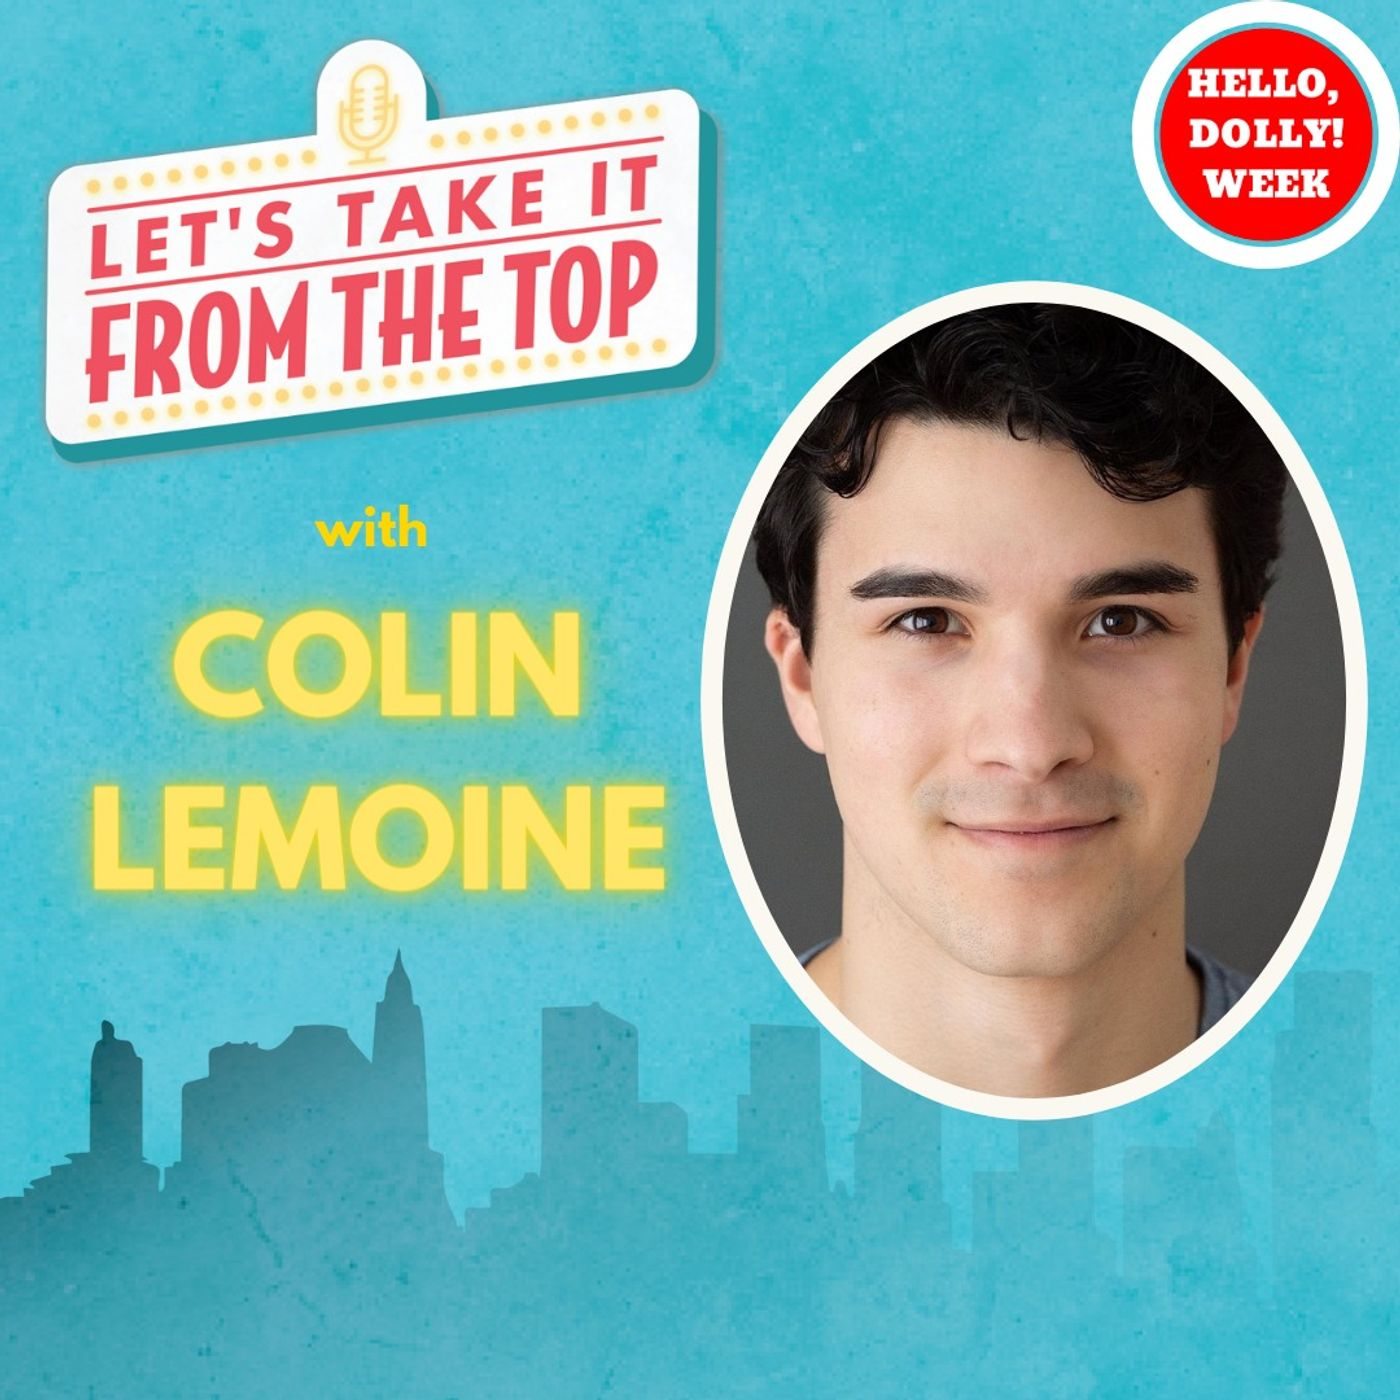 Episode 5: Colin LeMoine